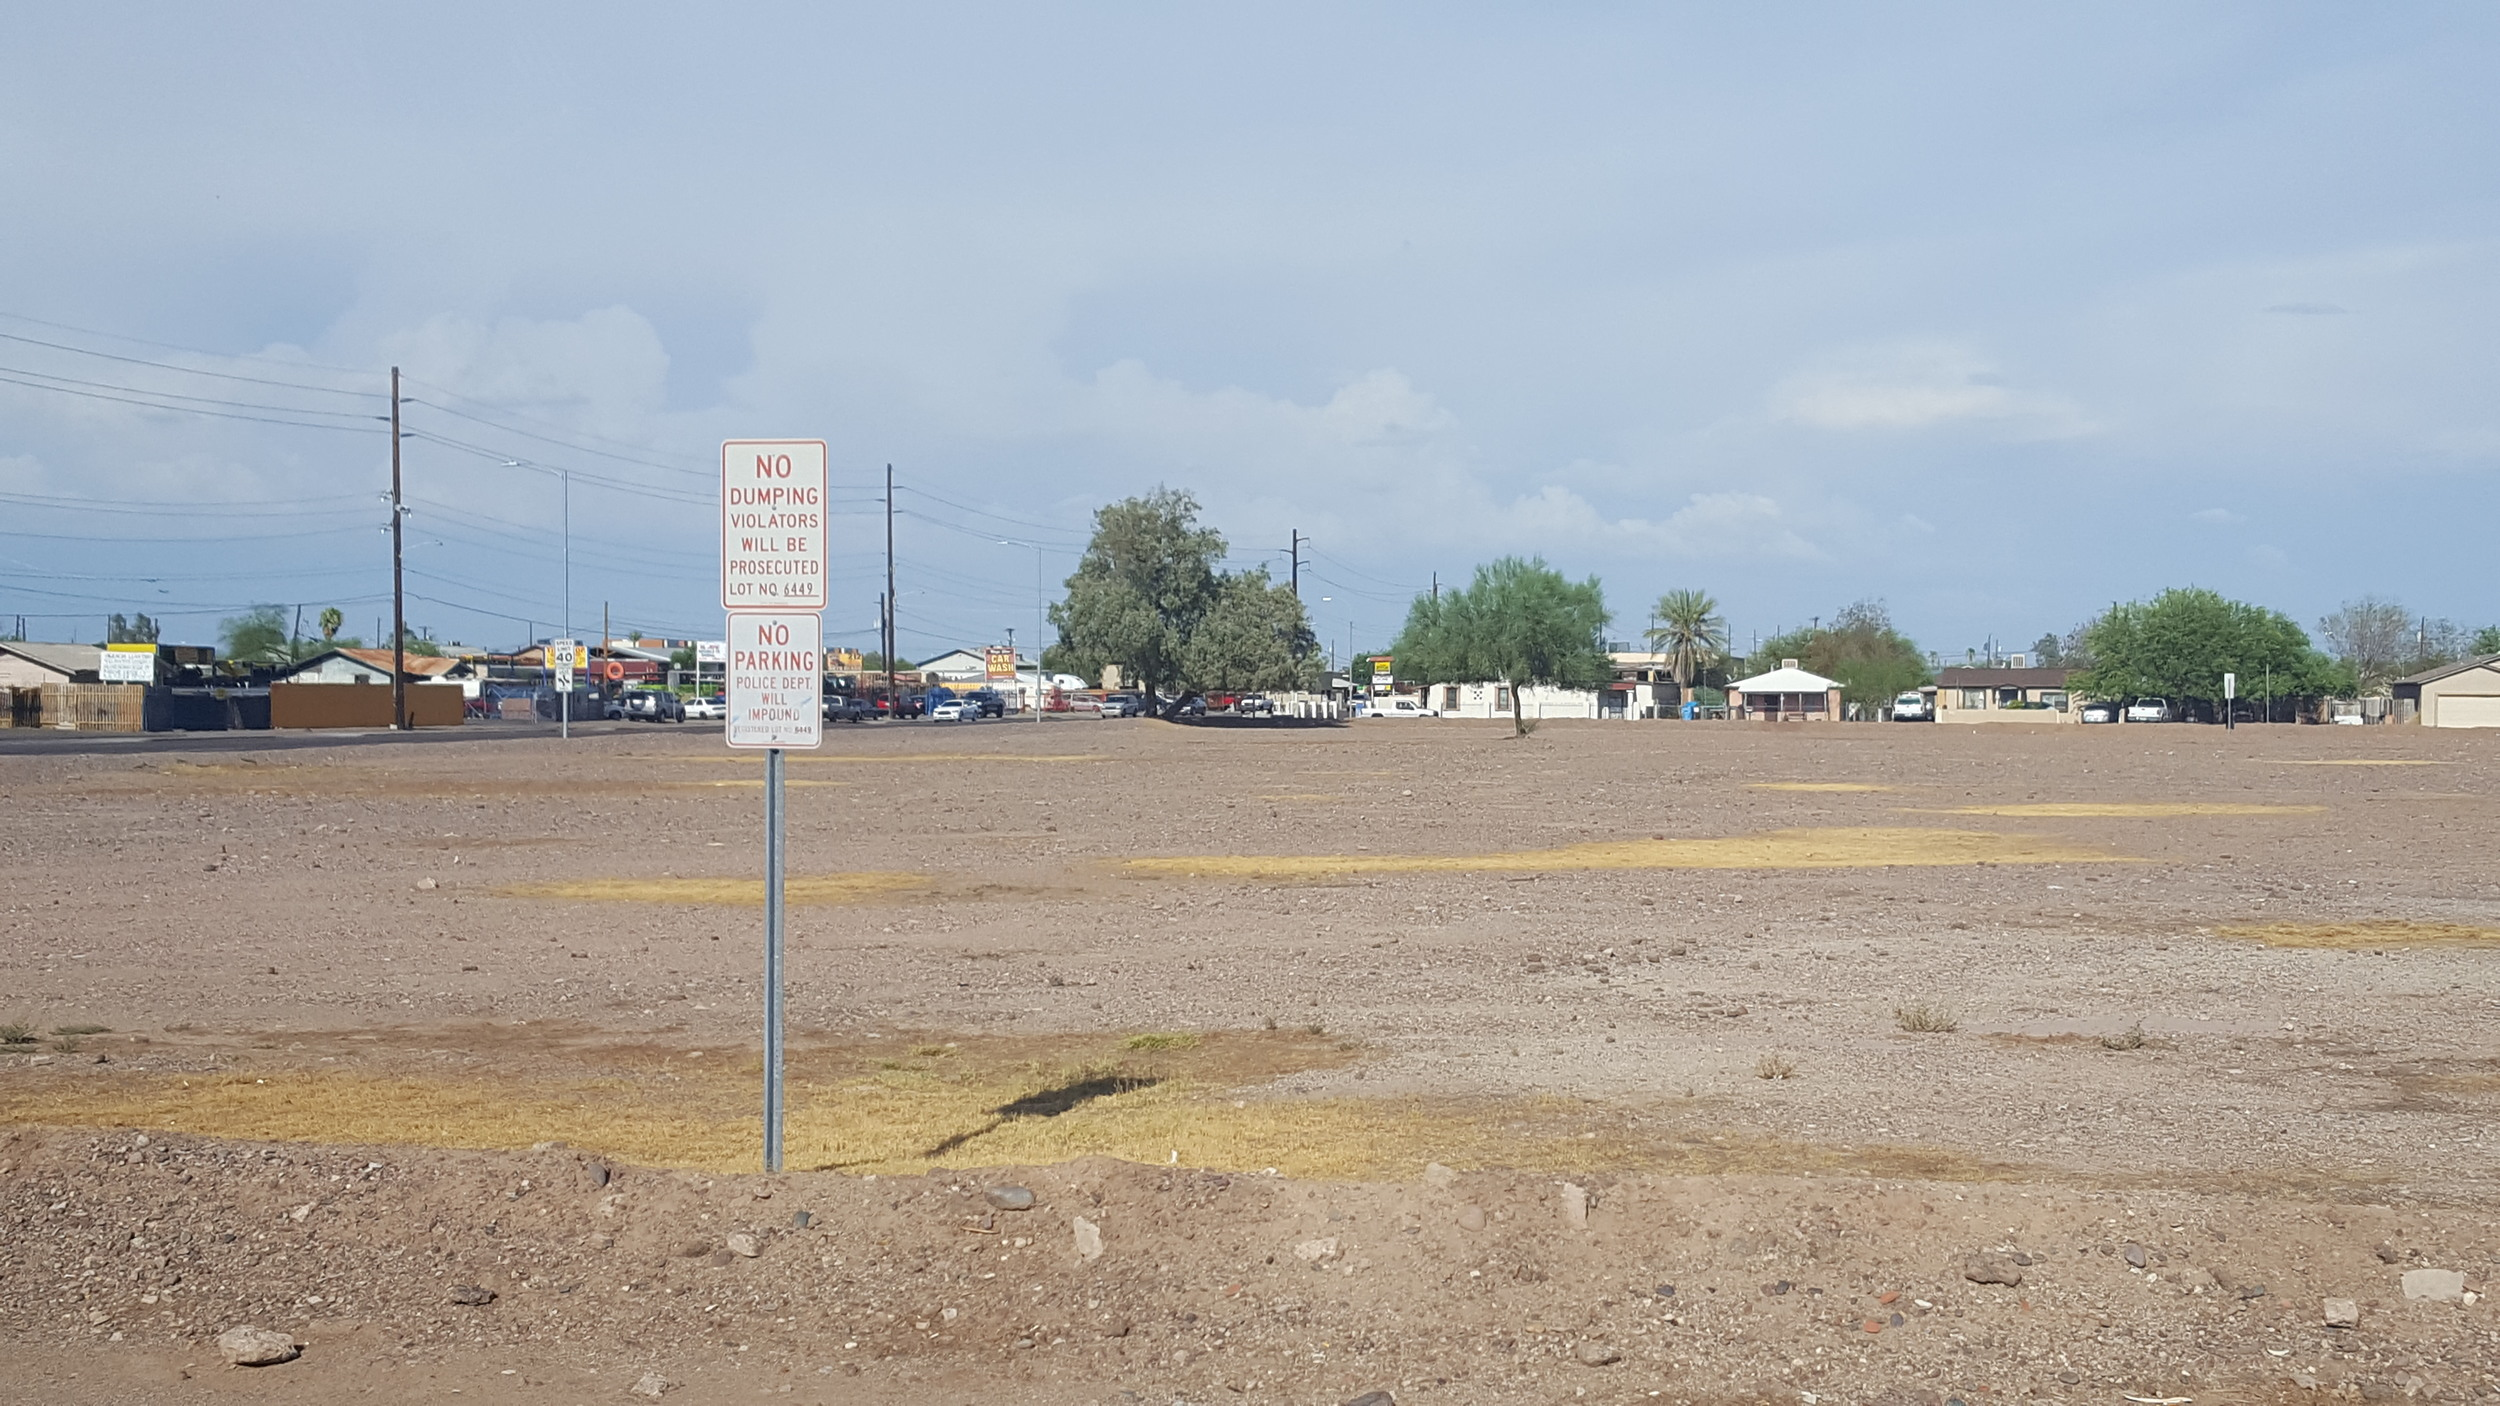 Brownfields, vacant land and illegal dumping plague many low-income neighborhoods, and challenge TOD opportunity, but addressing these challenges with the community is central to an eTOD process. (Photo: M. Zimmerman)